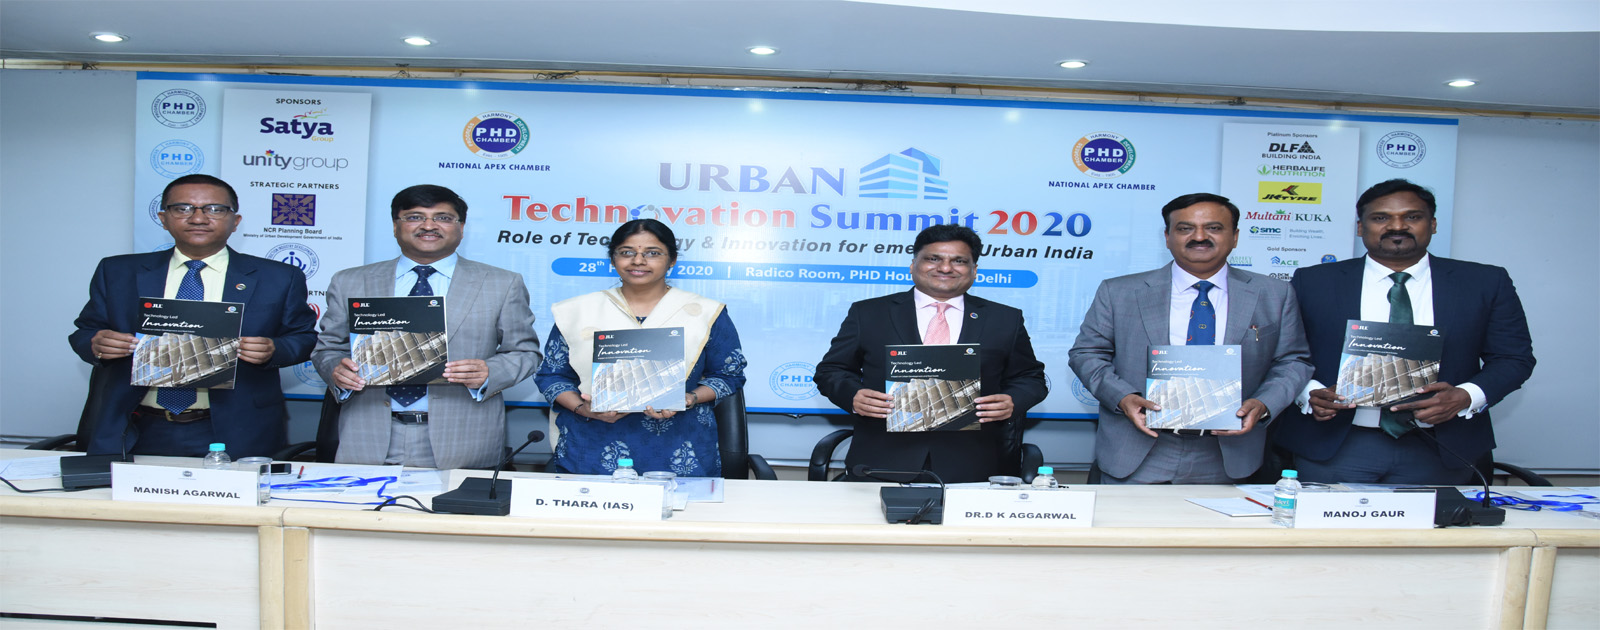 Urban Technovation Summit 2020